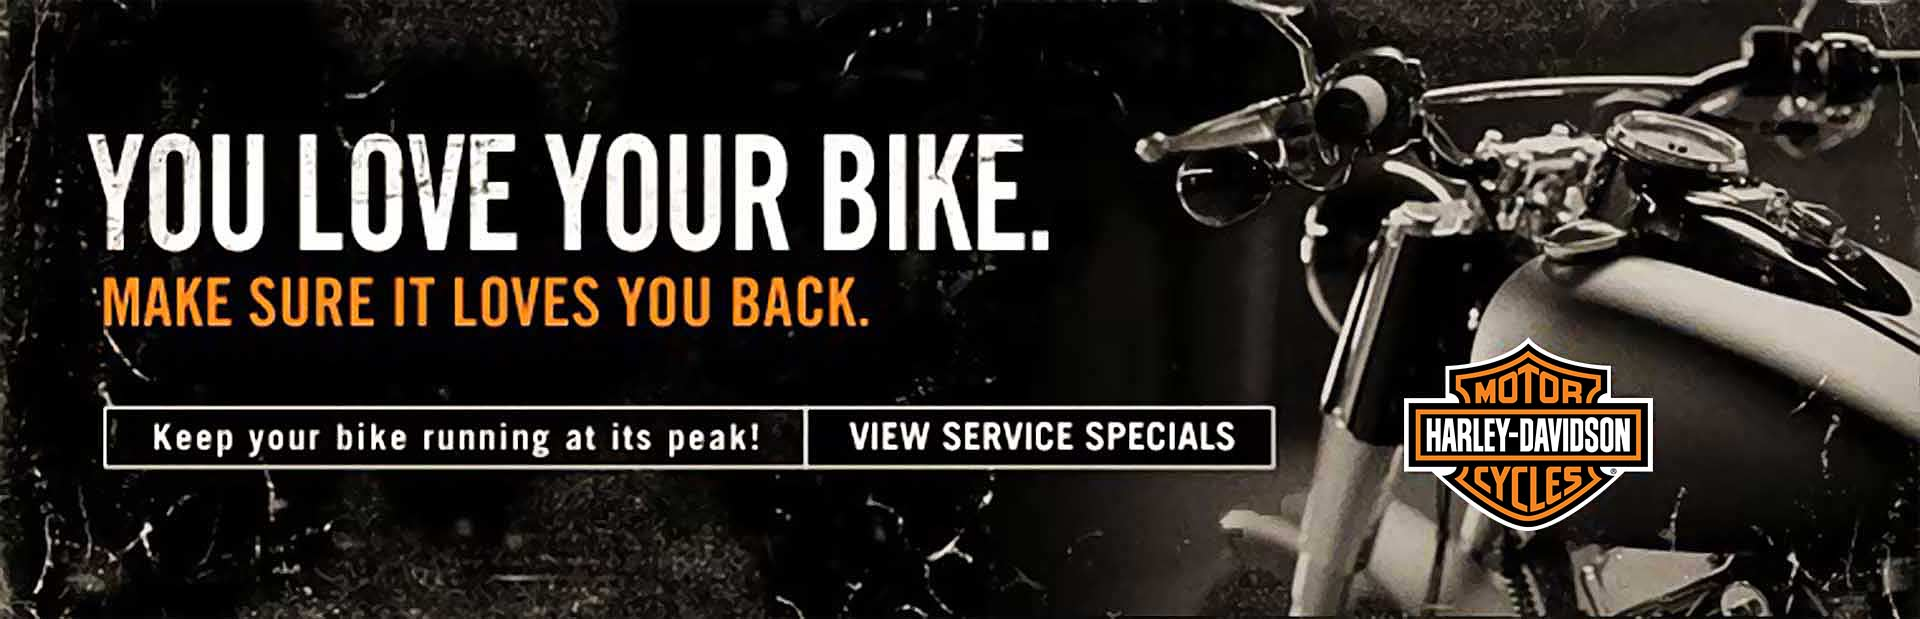 Keep your bike running at its peak! Click here to view service specials.